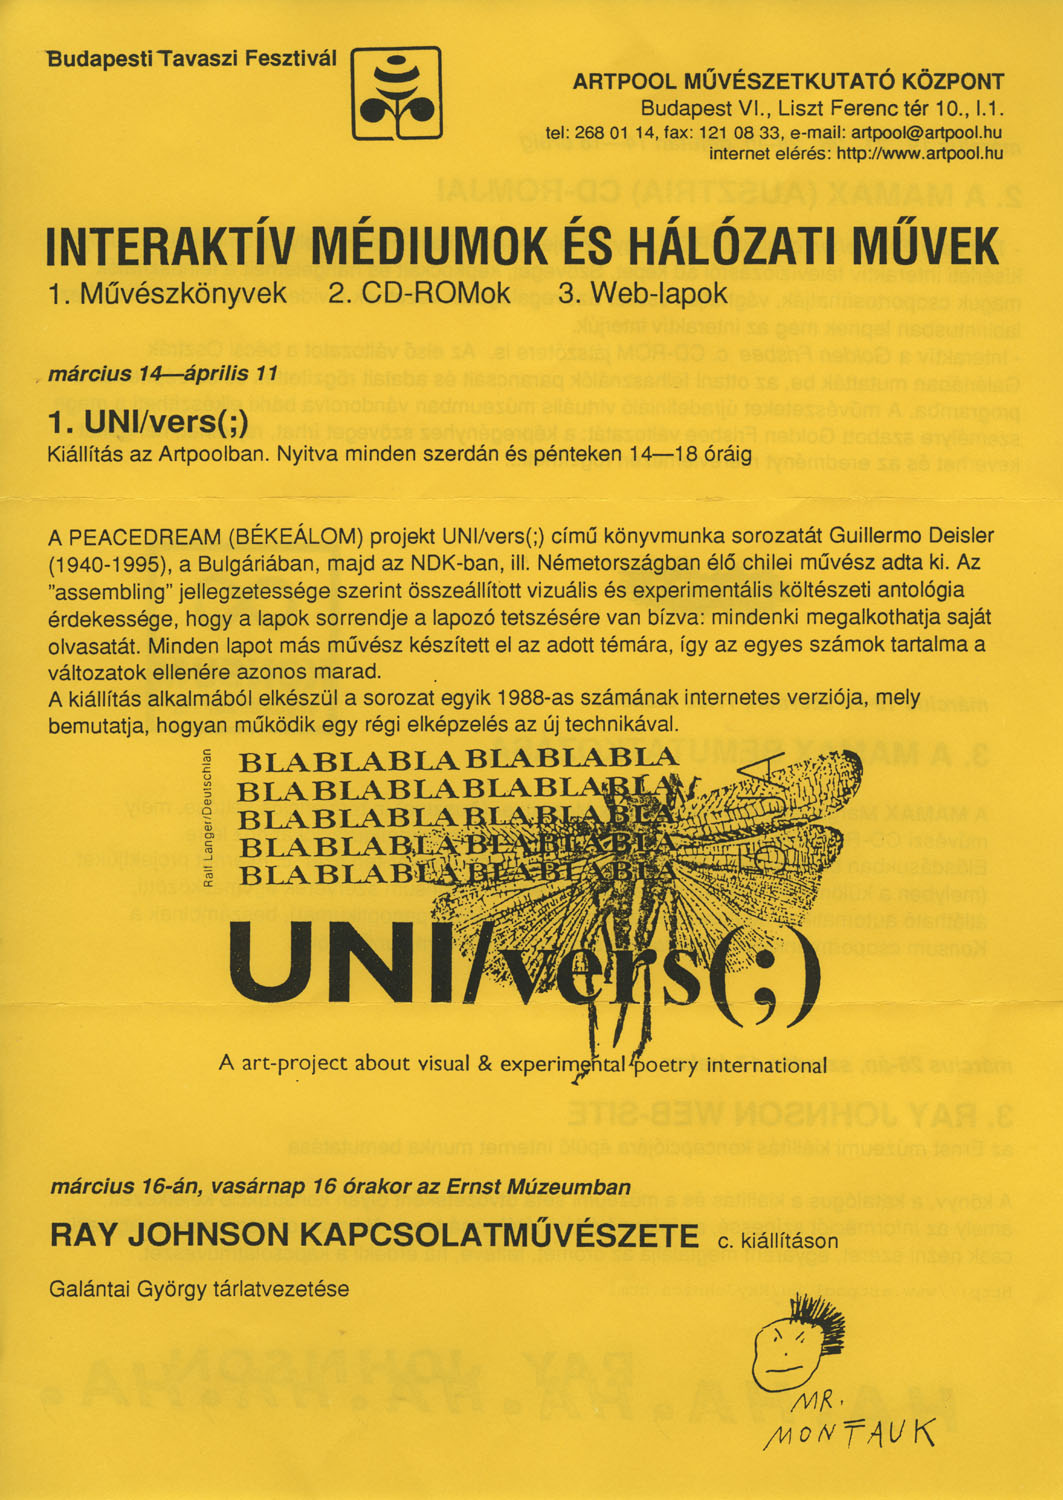 Invitation  for the series of events Interactive Mediums and Net-Works, Artpool Art Research Center, Budapest 1997 (1st and 2nd page)